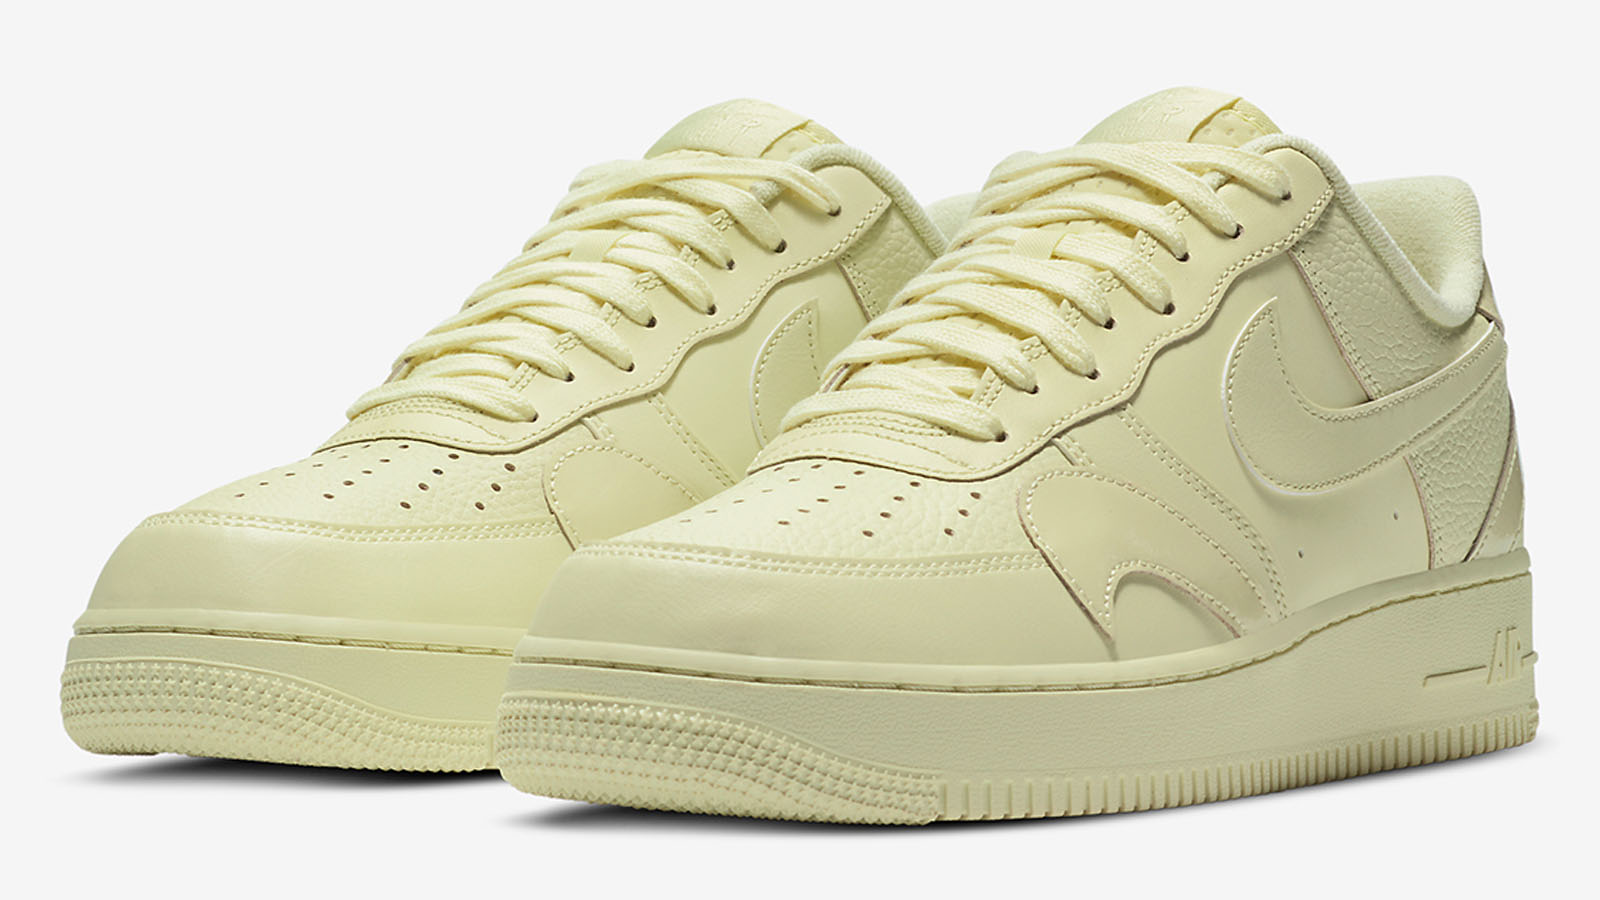 nike air force 1 misplaced Swoosh